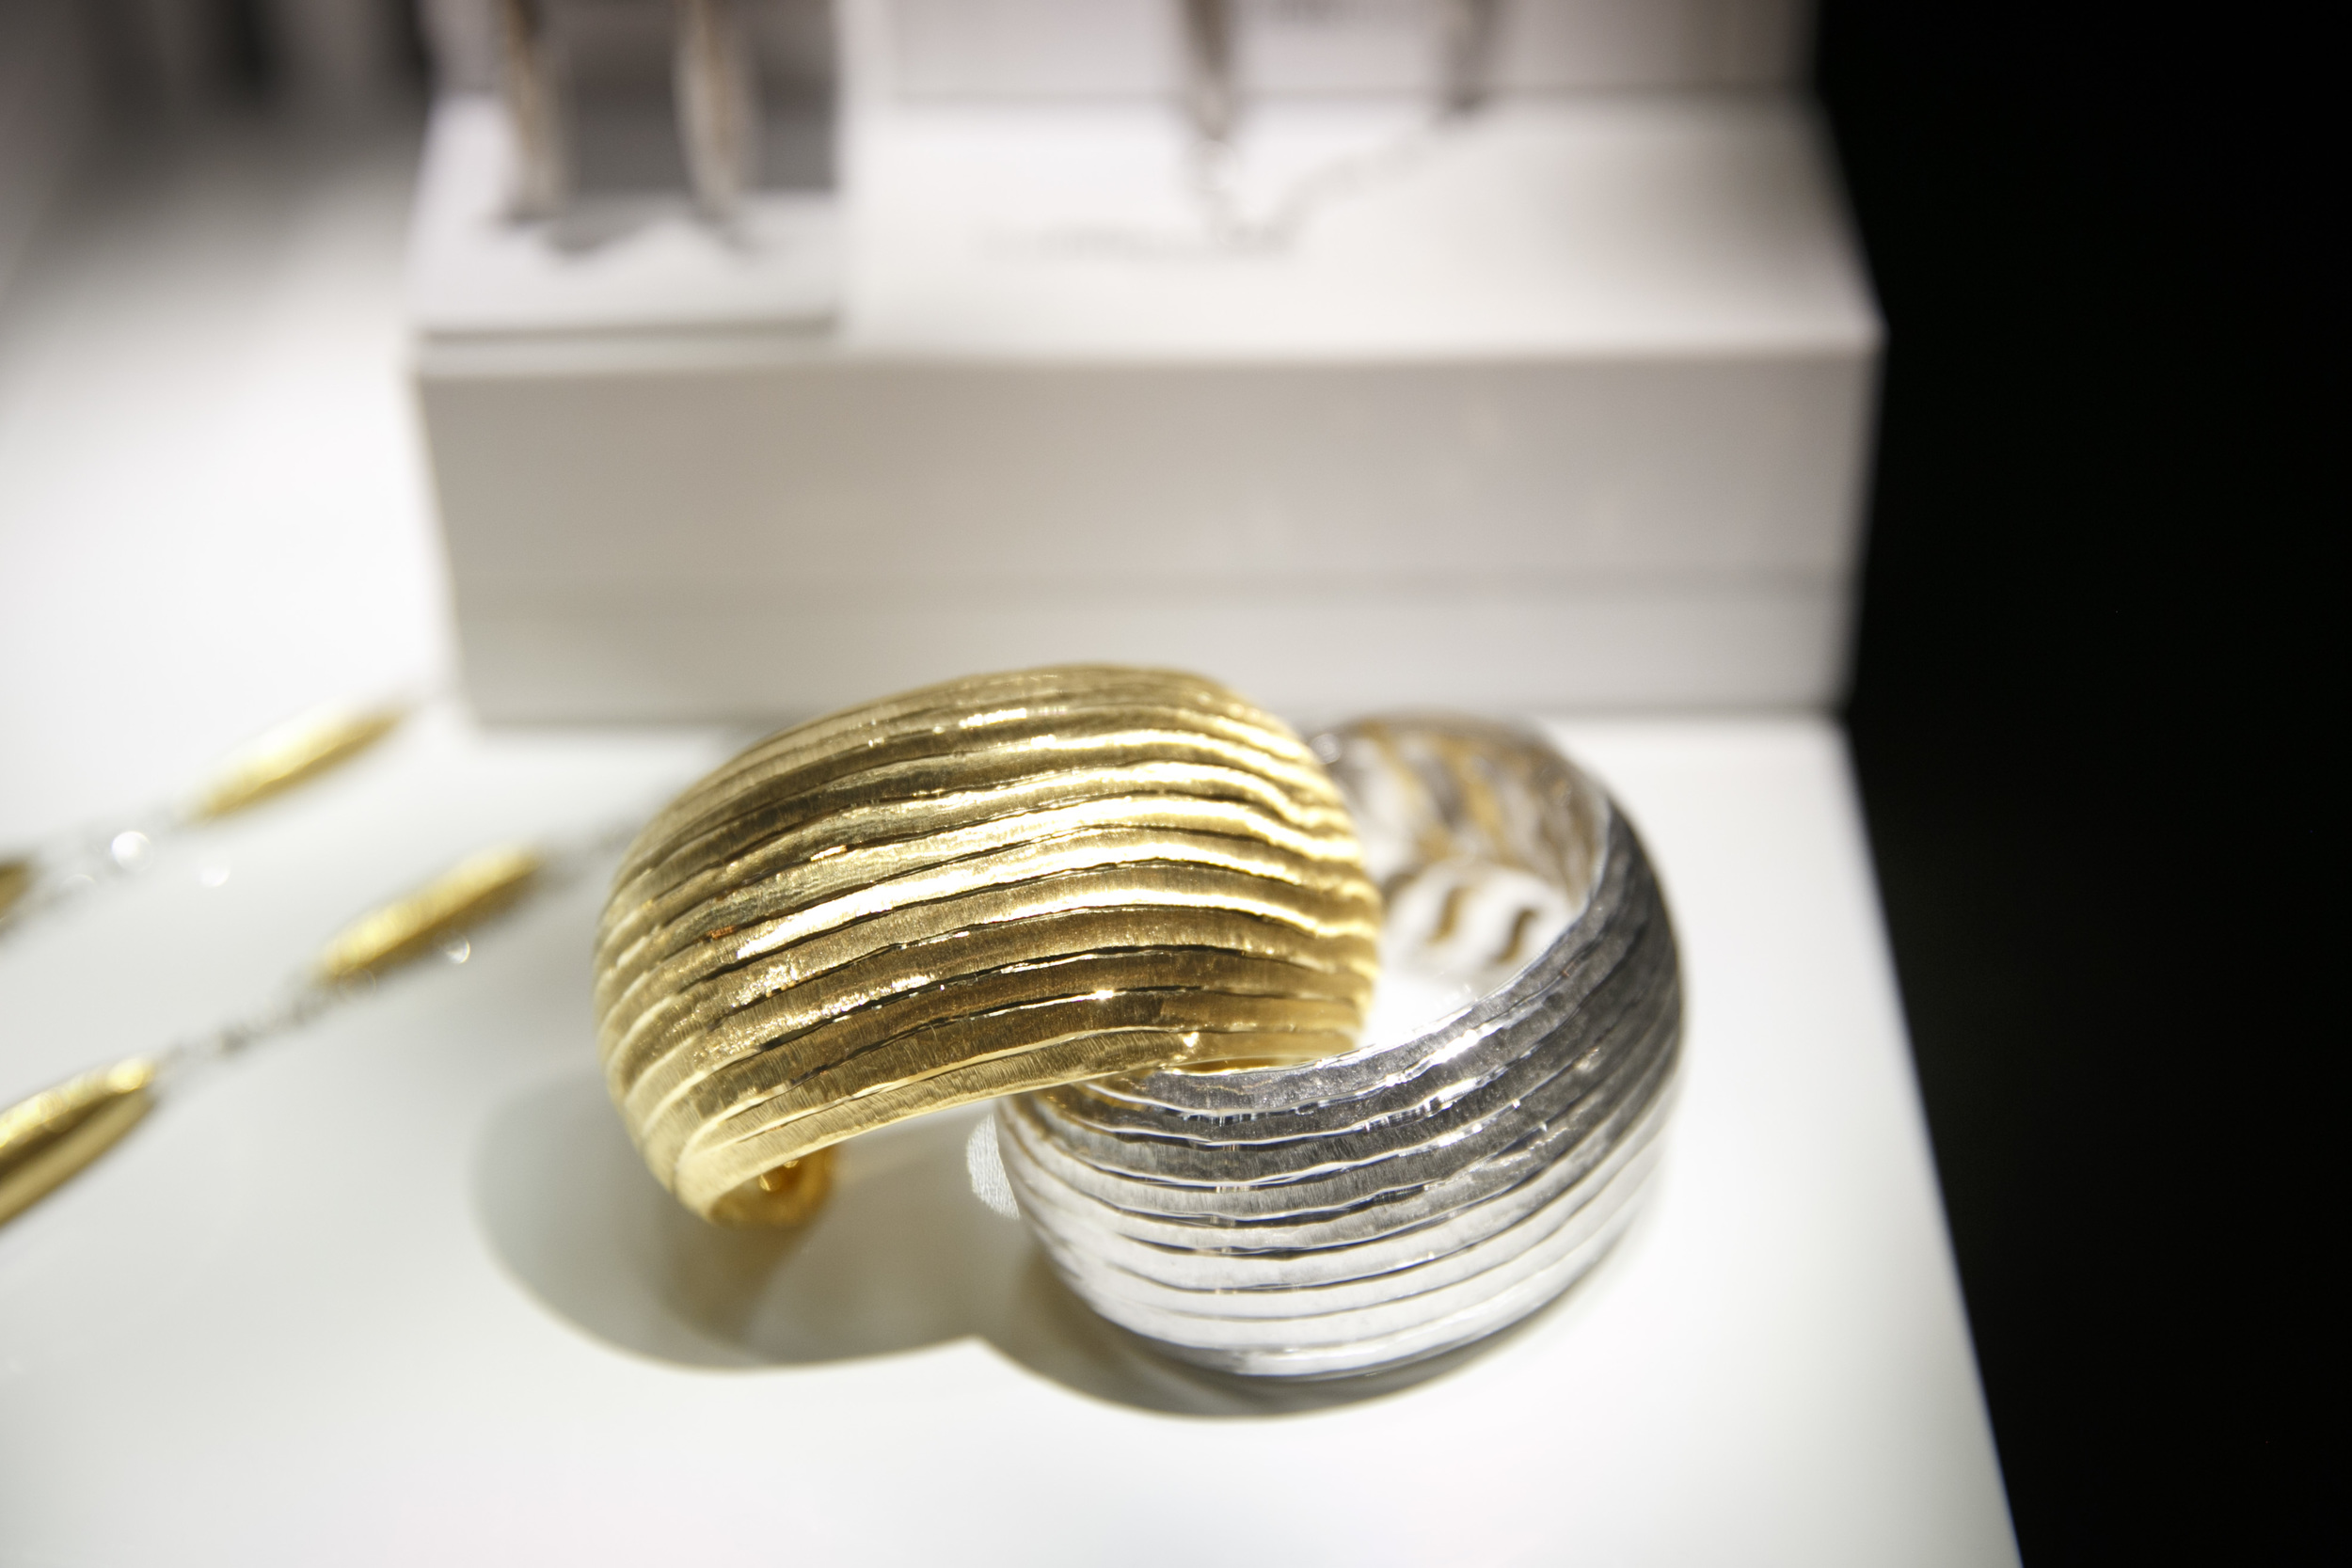 Craig Husar New Jewelry Trends VicenzaOro event in Vicenza, Italy